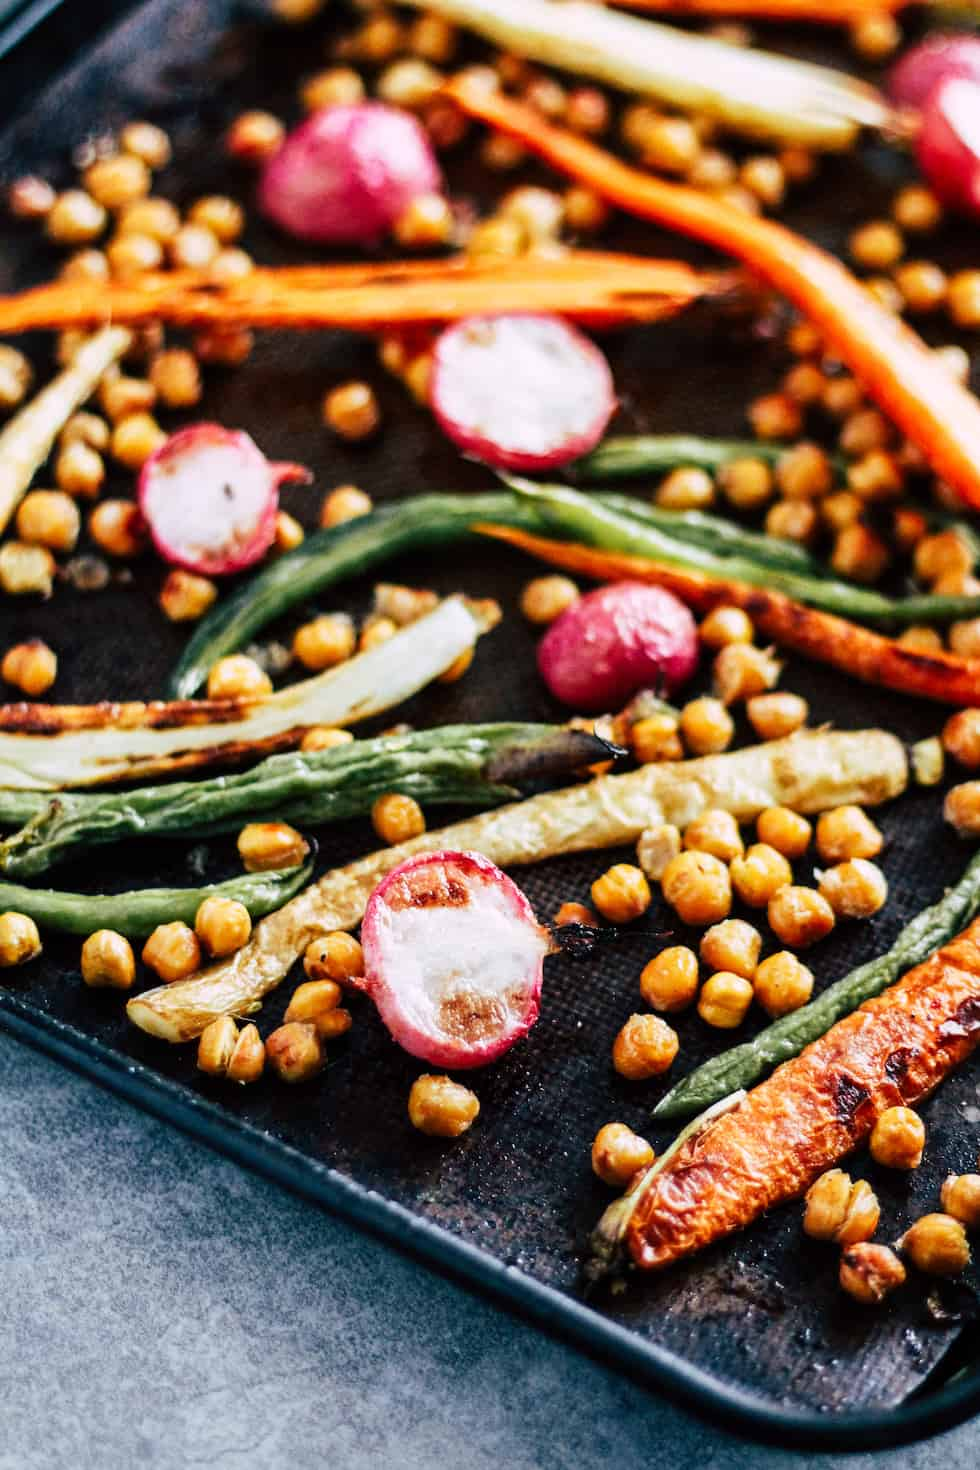 Sheet Pan Dinner with chickpeas, carrots, and green beans.